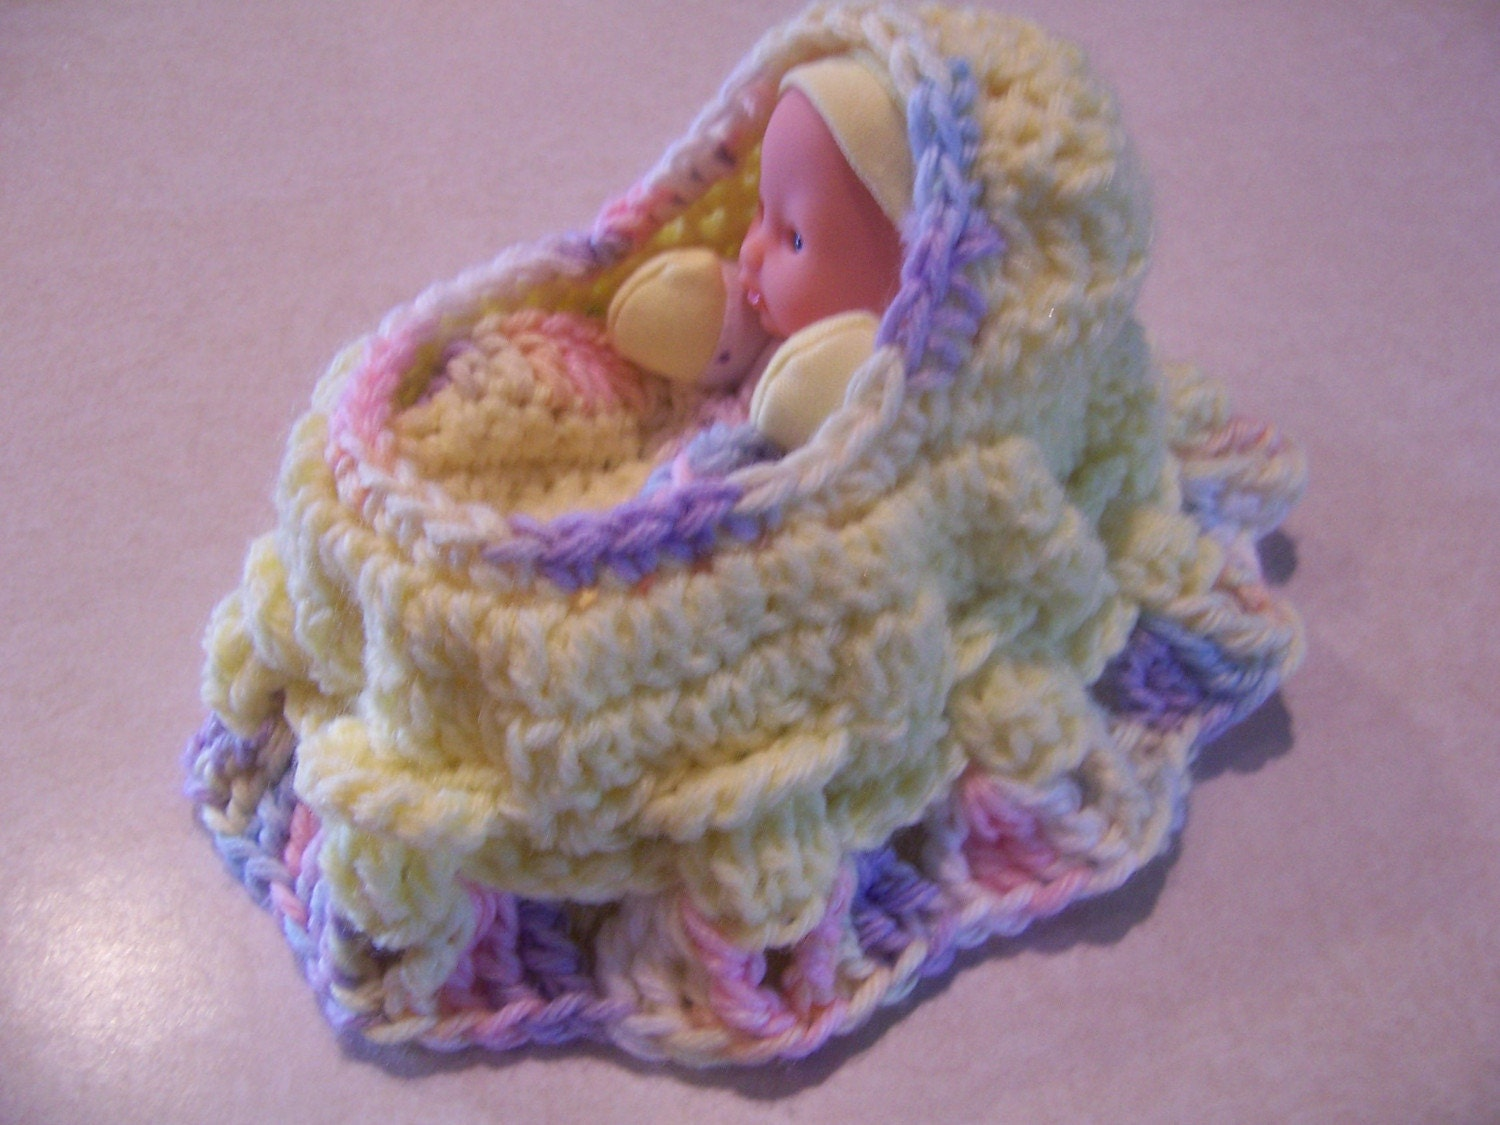 Crocheted Cradle Purse with Doll and Blanket Yellow